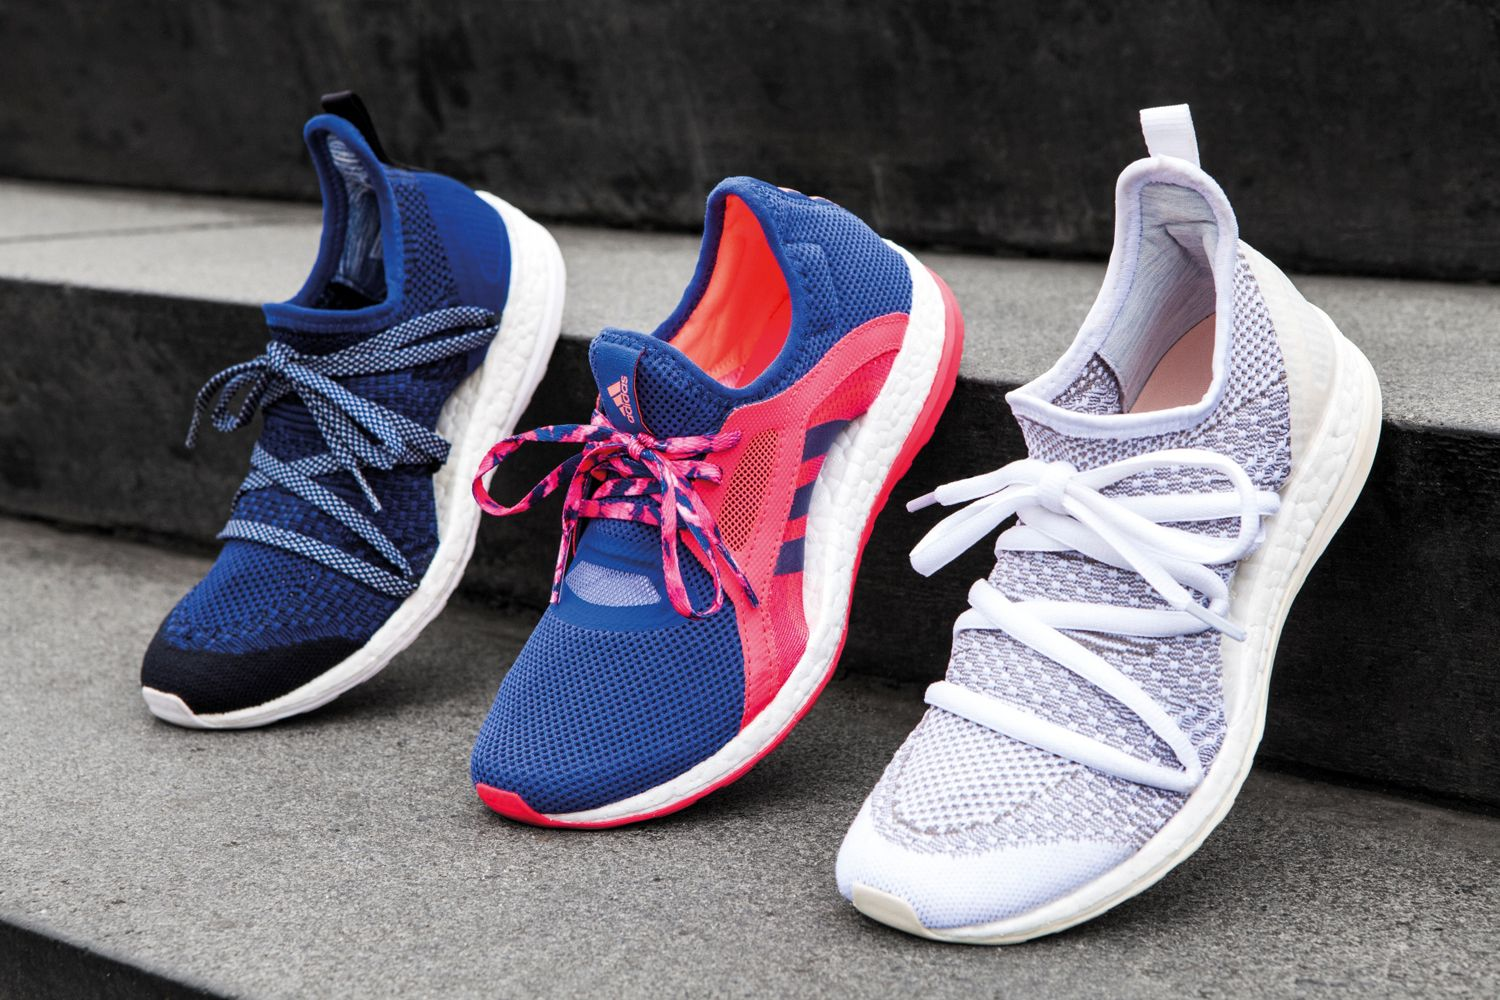 womens adidas boost shoes on sale adidas shoes for girls blue